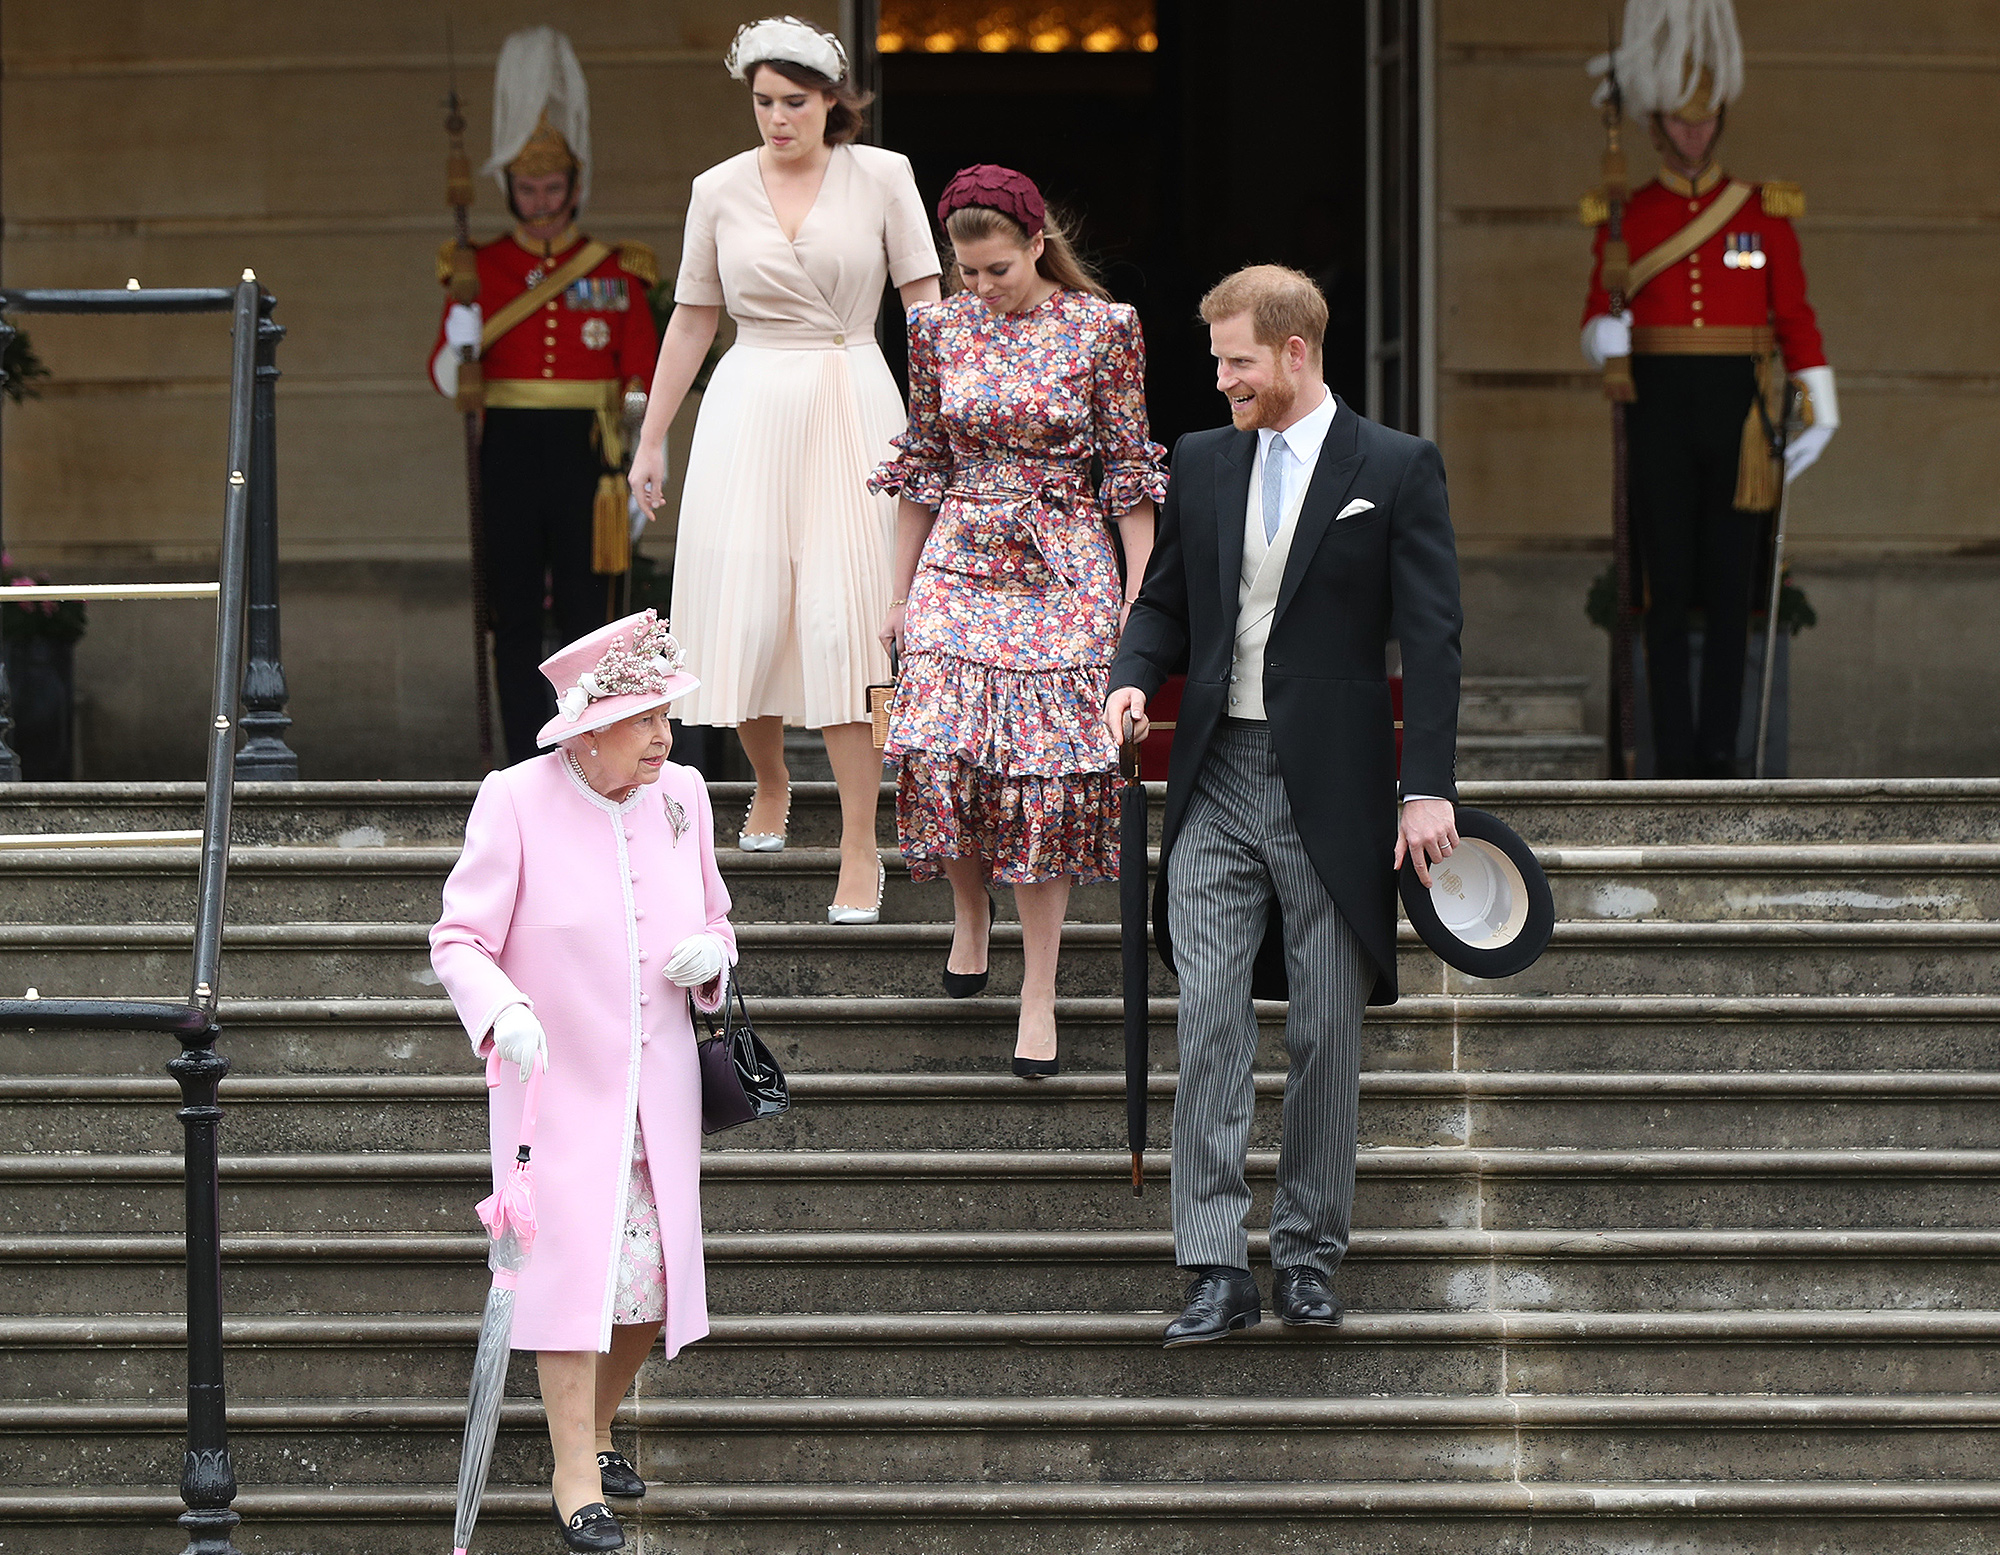 Queen Elizabeth II, Prince Harry, Duke of Sussex, Princess Eugenie and Princess Beatrice